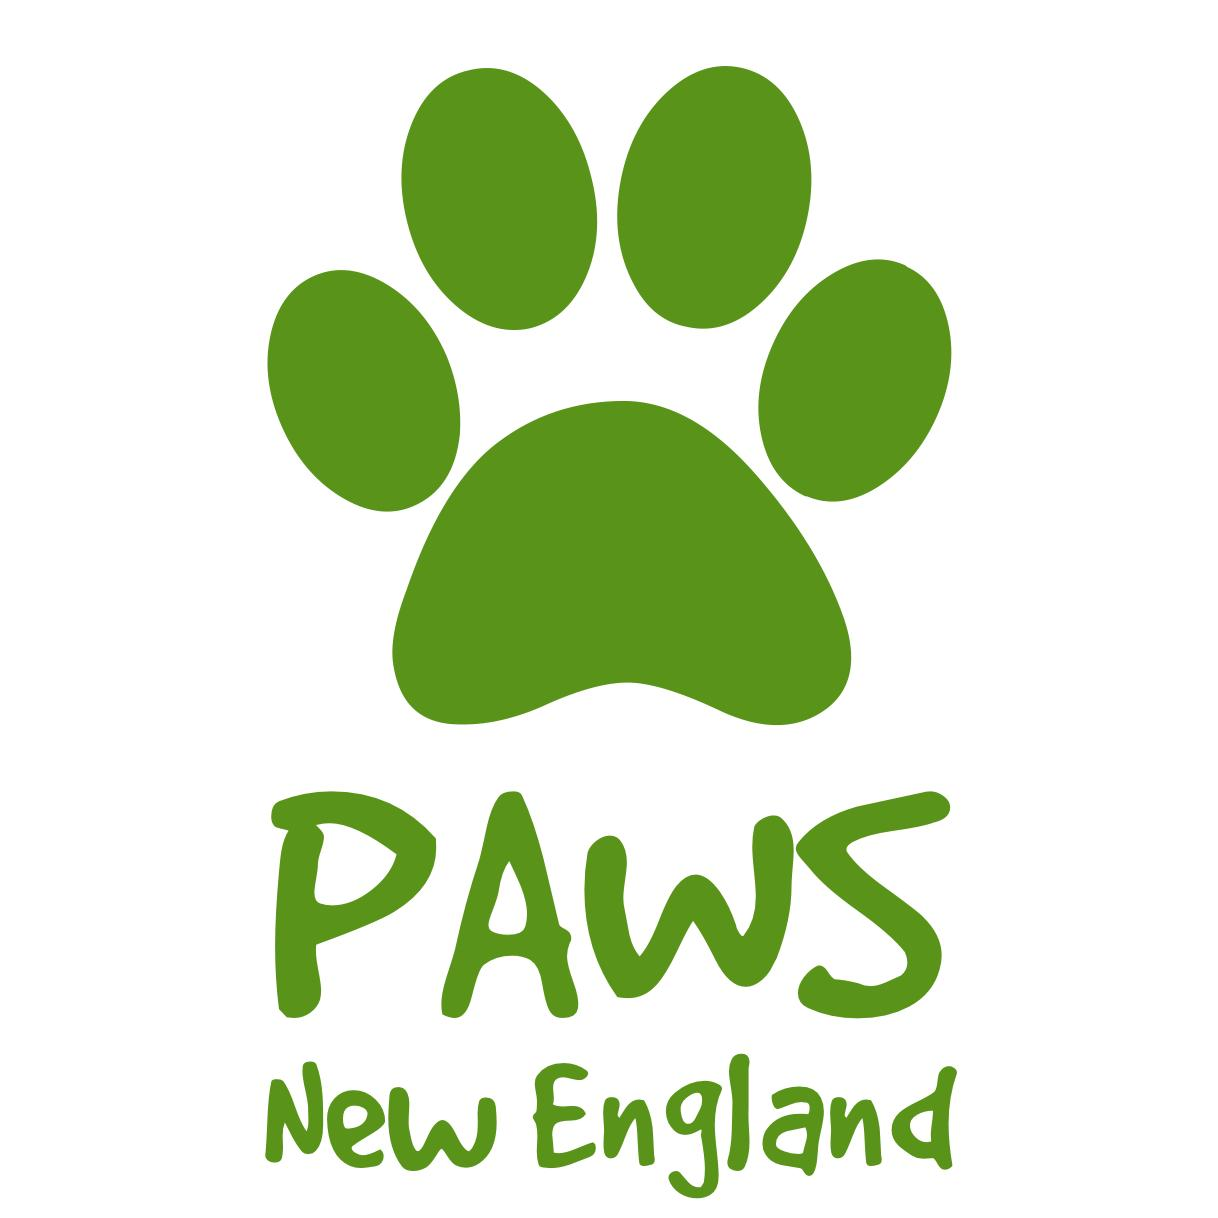 PAWS New England